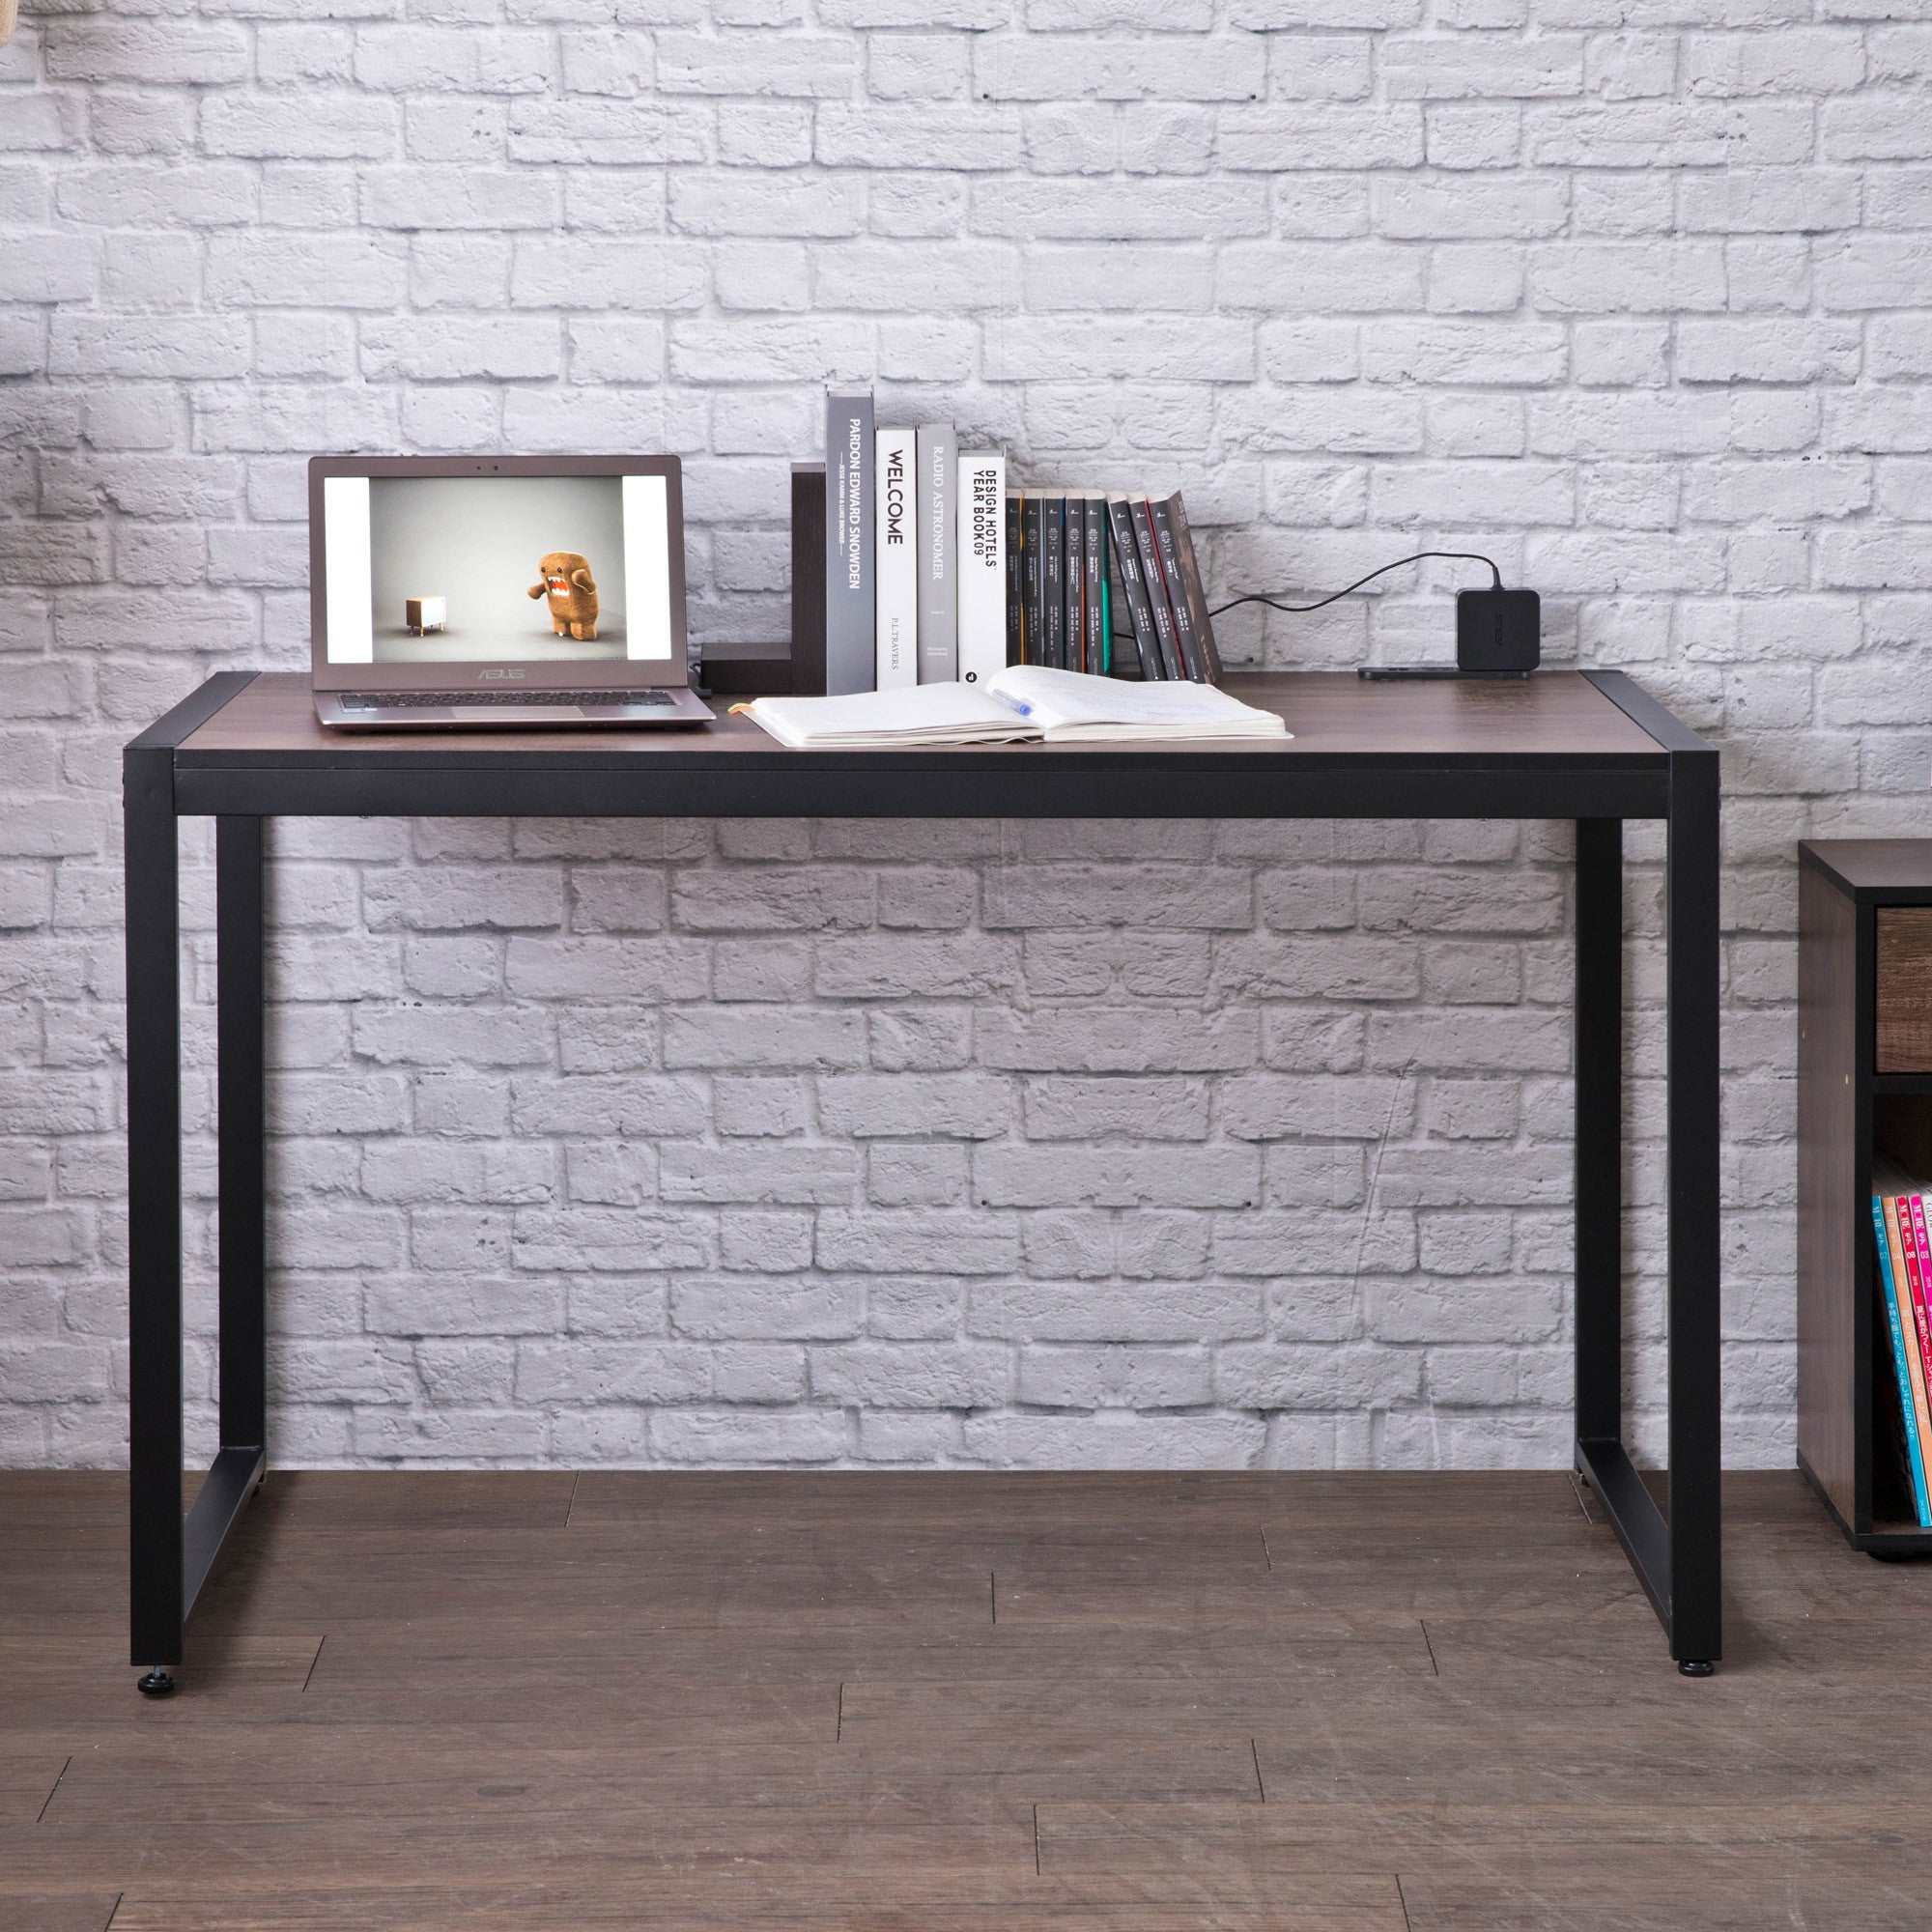 DIY Industrial Style Desk with 2 Power Socket & 2 USB Ports,Black Sand